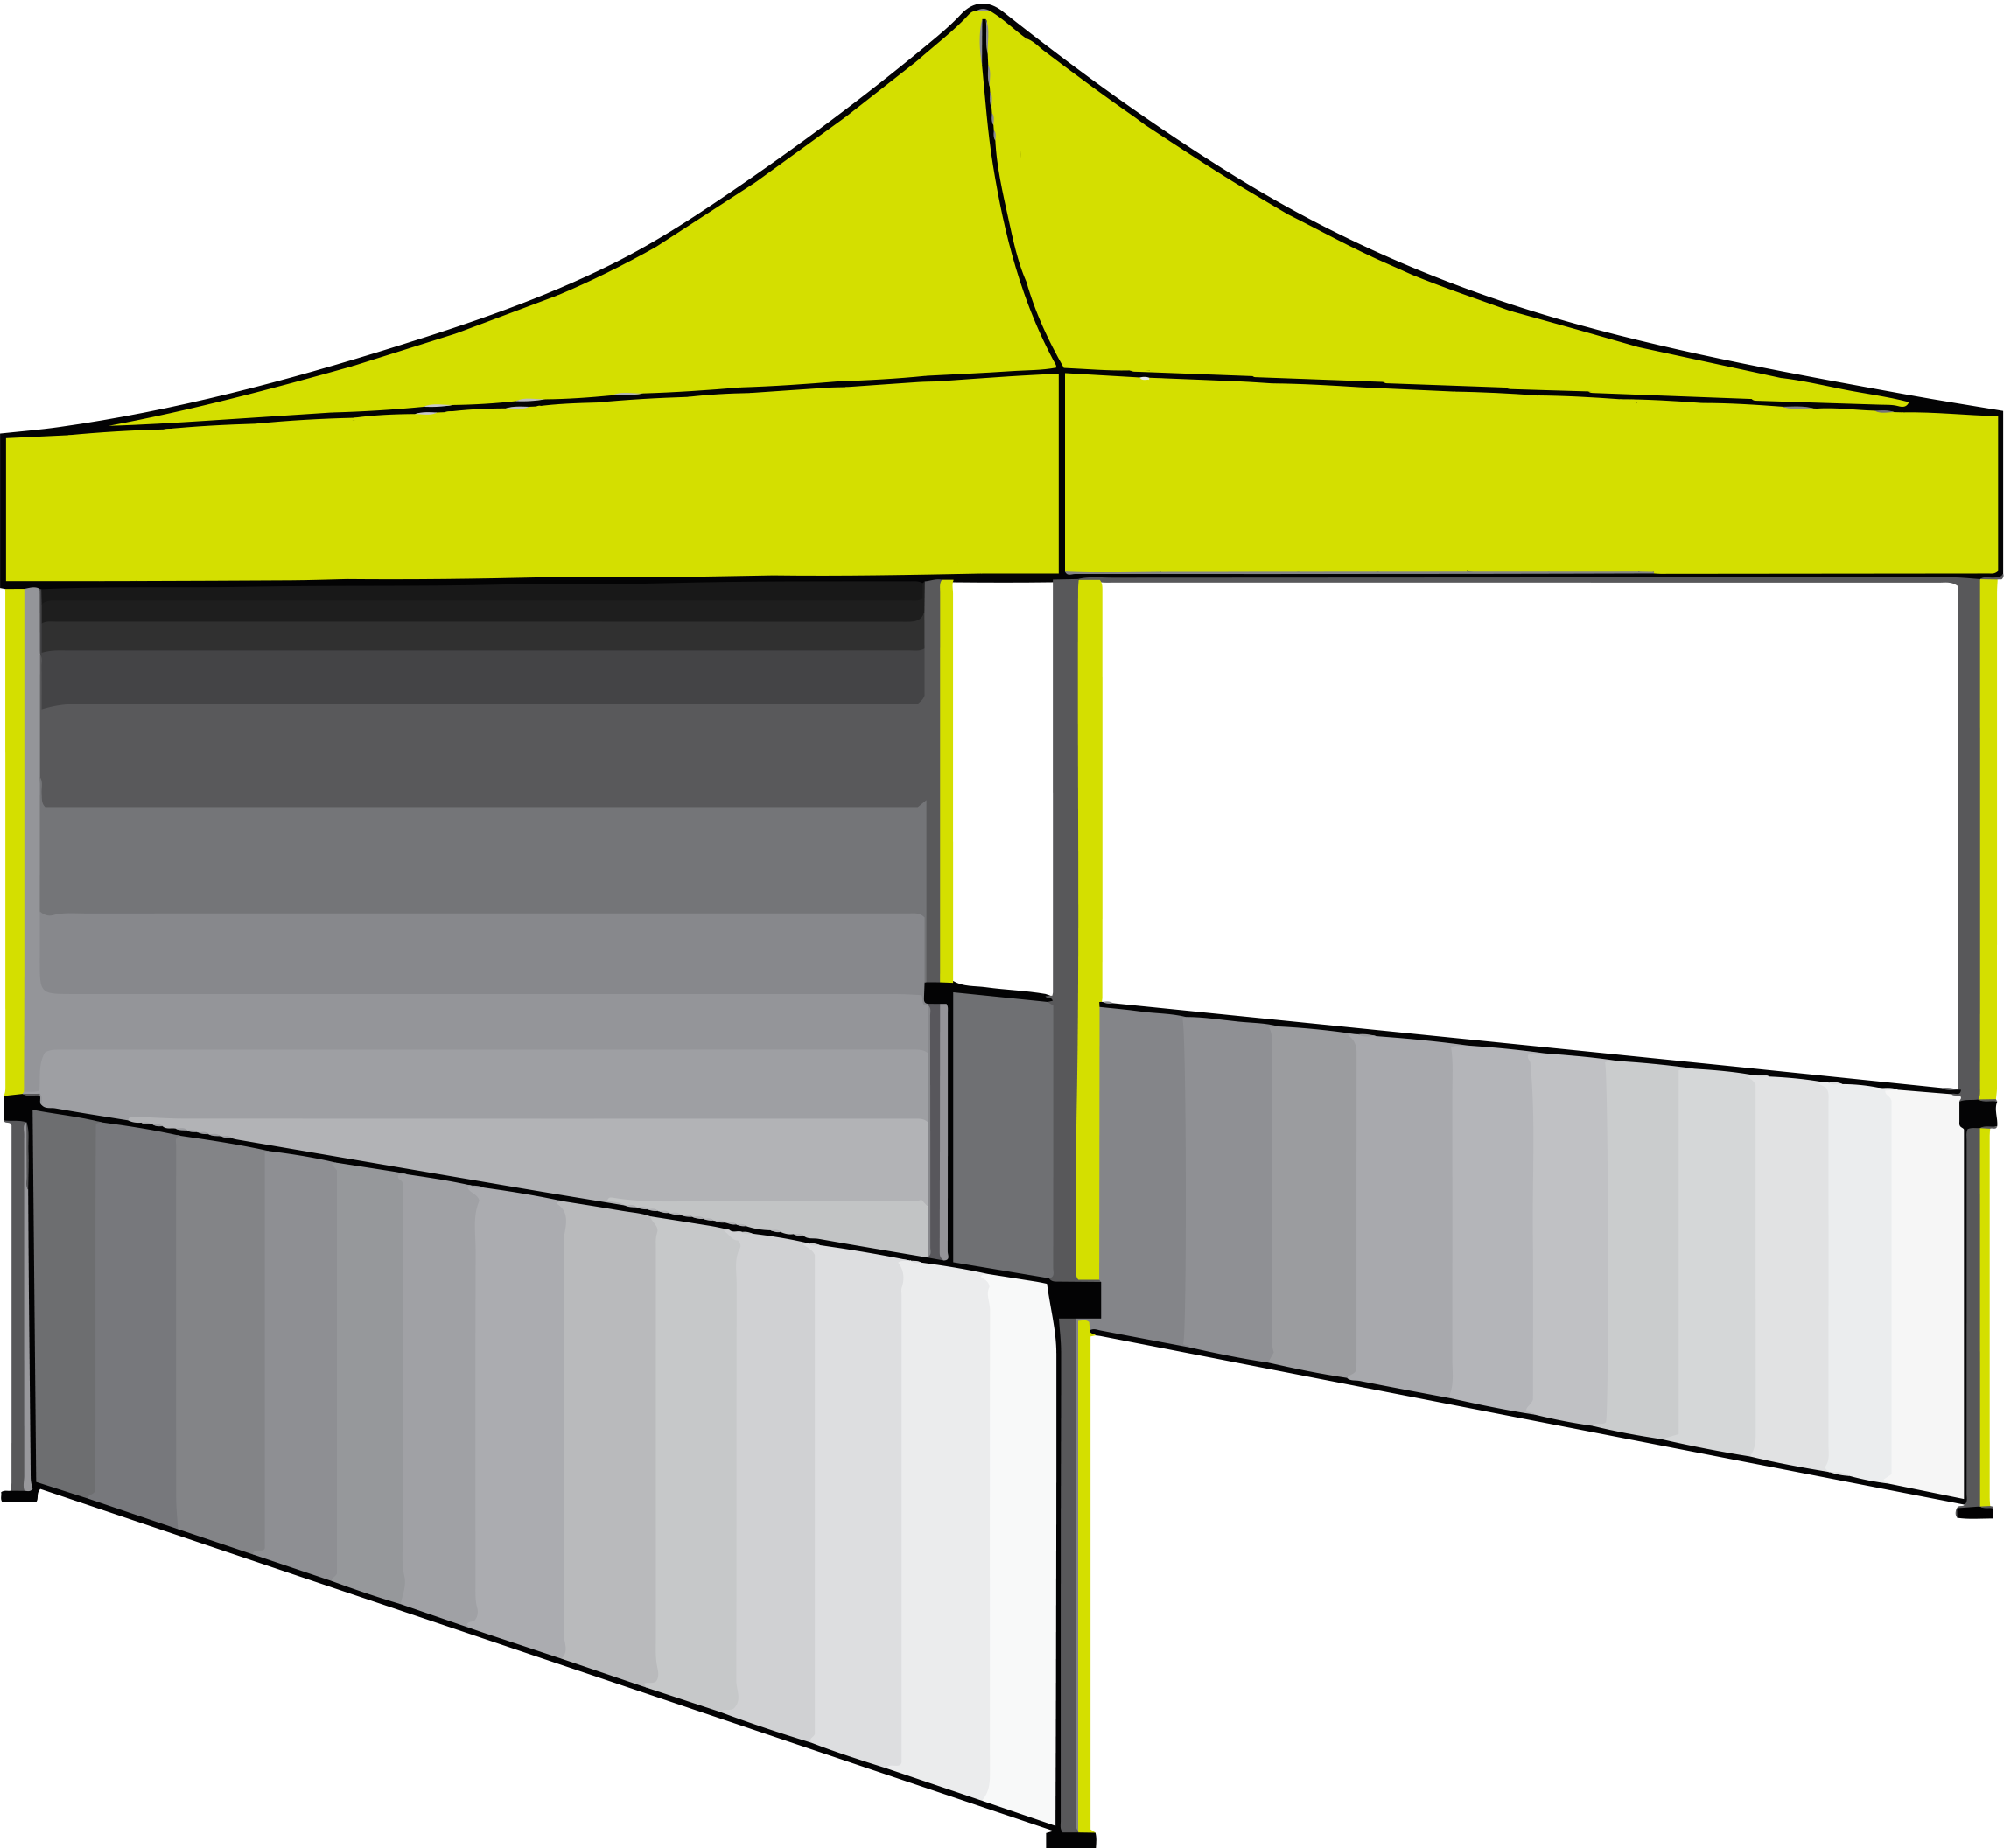 Products dti popups x. Clipart tent canopy